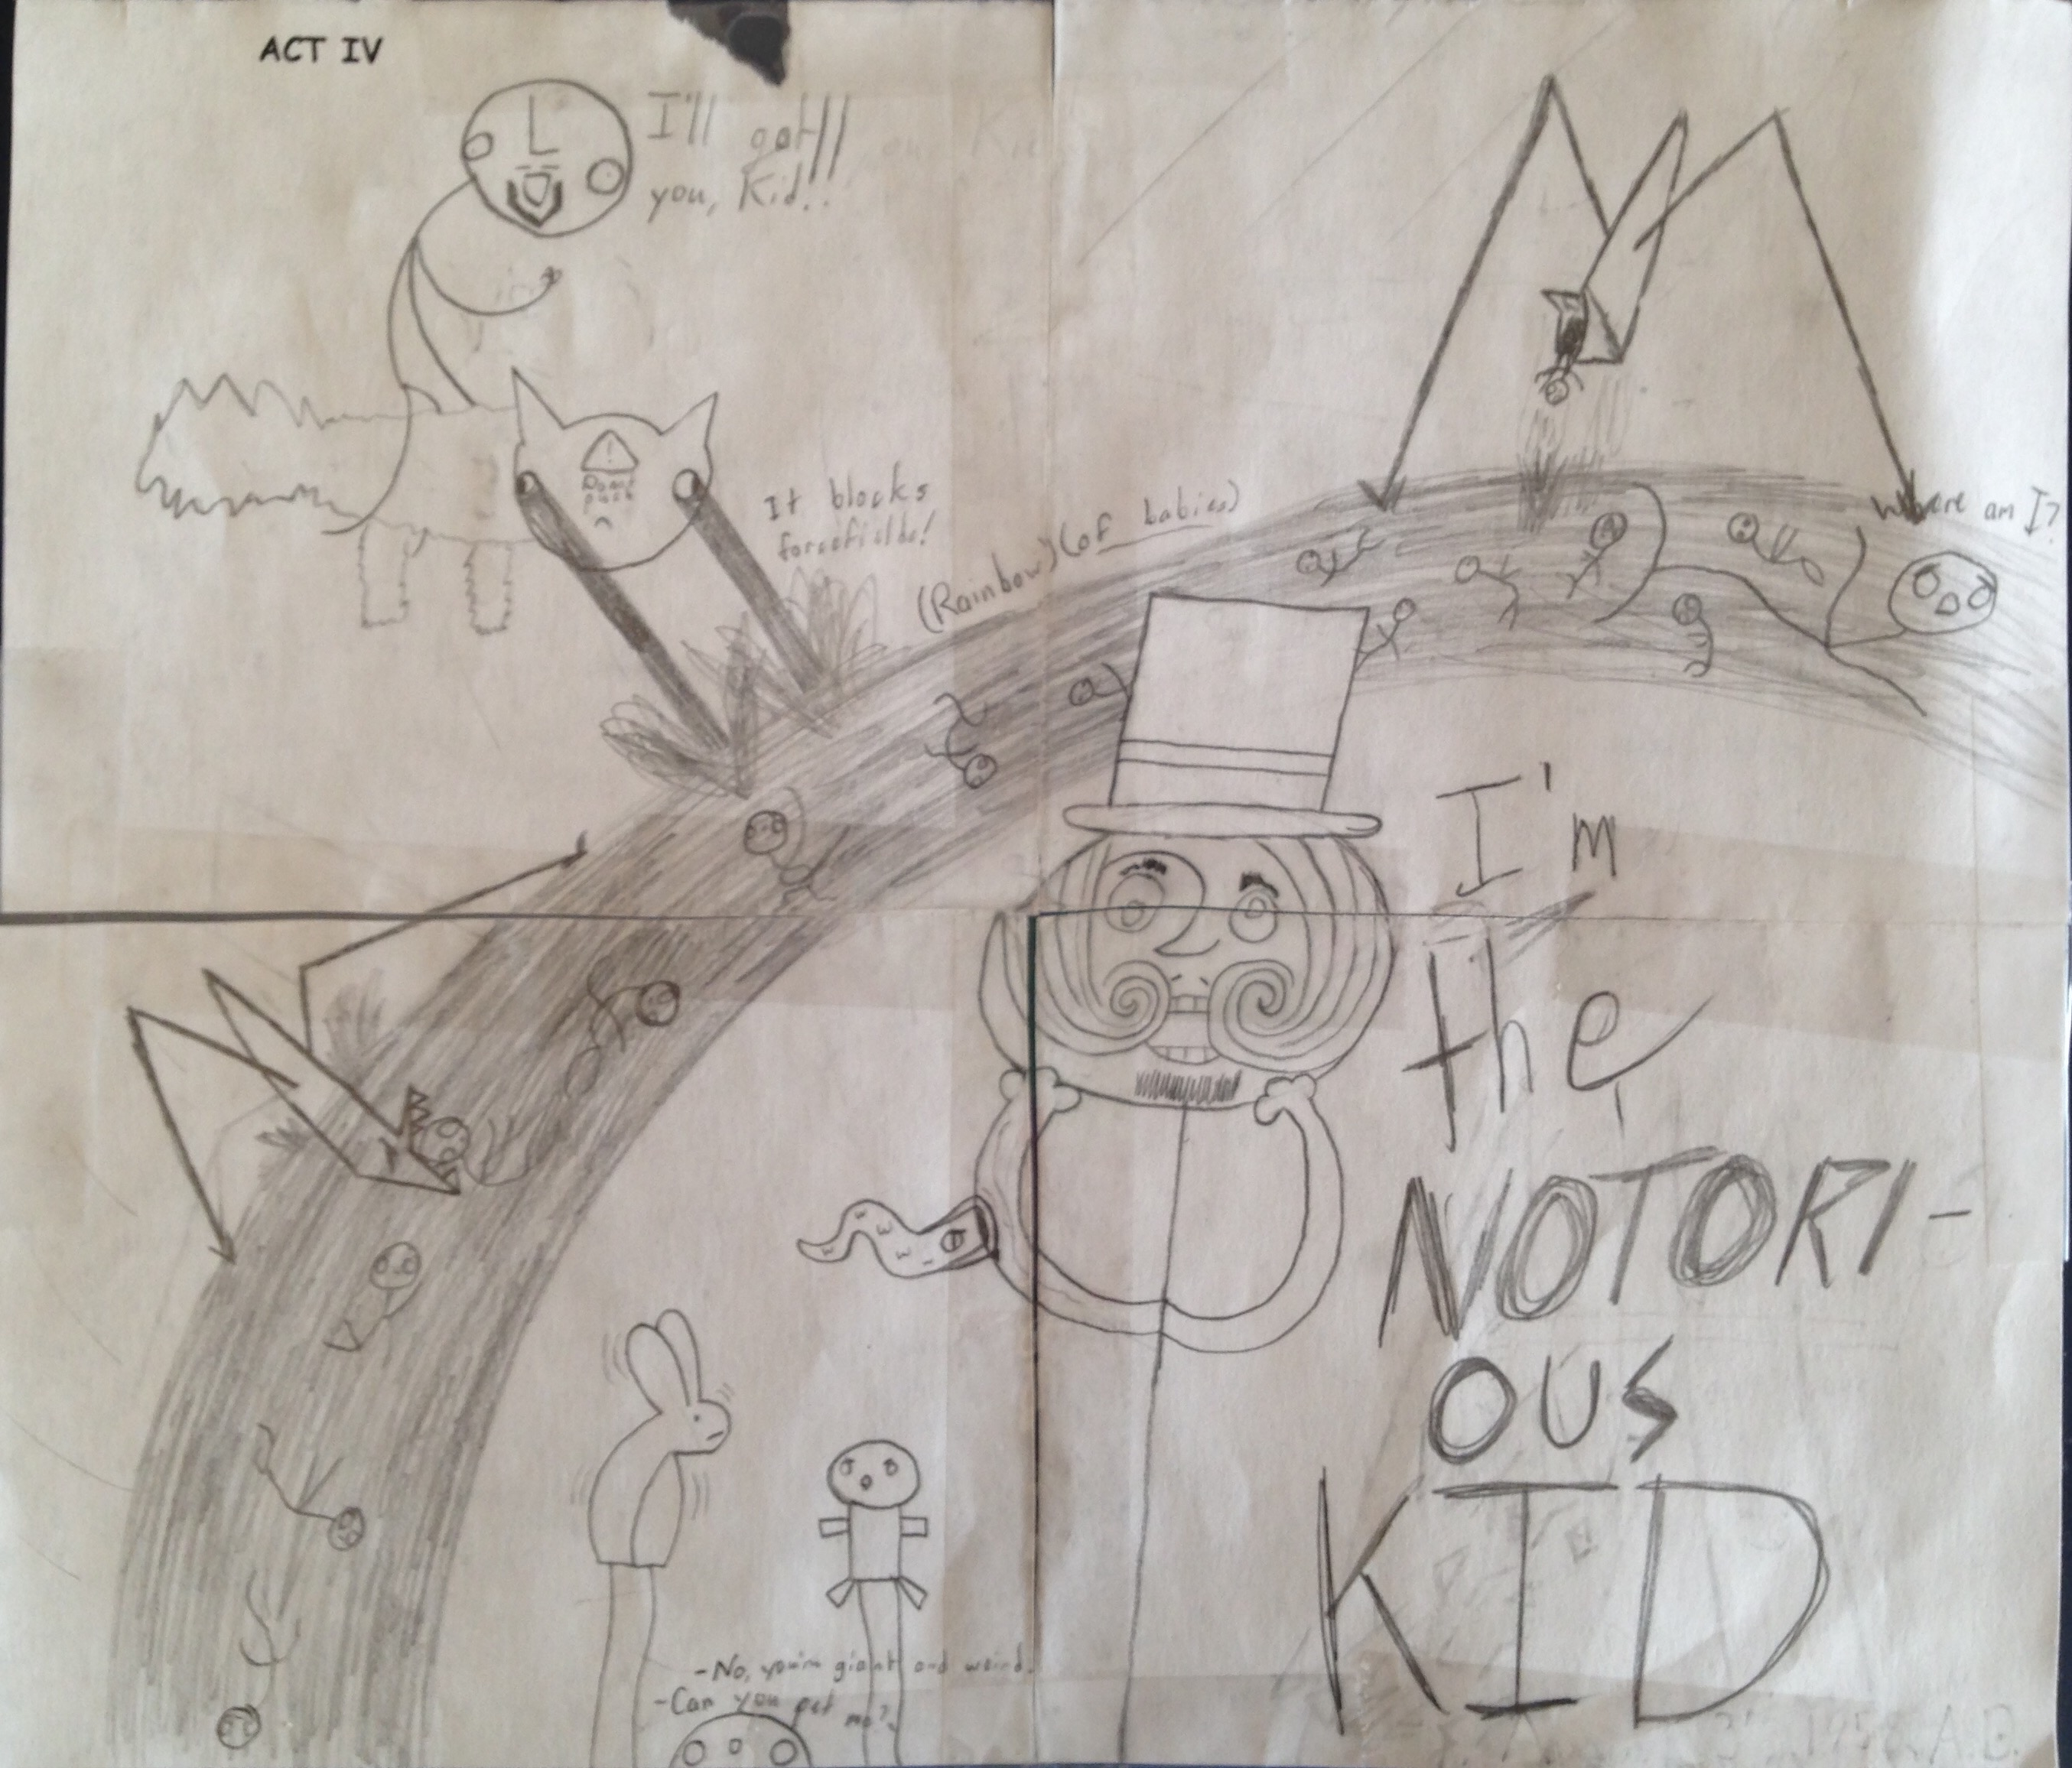 The Notorious Kid